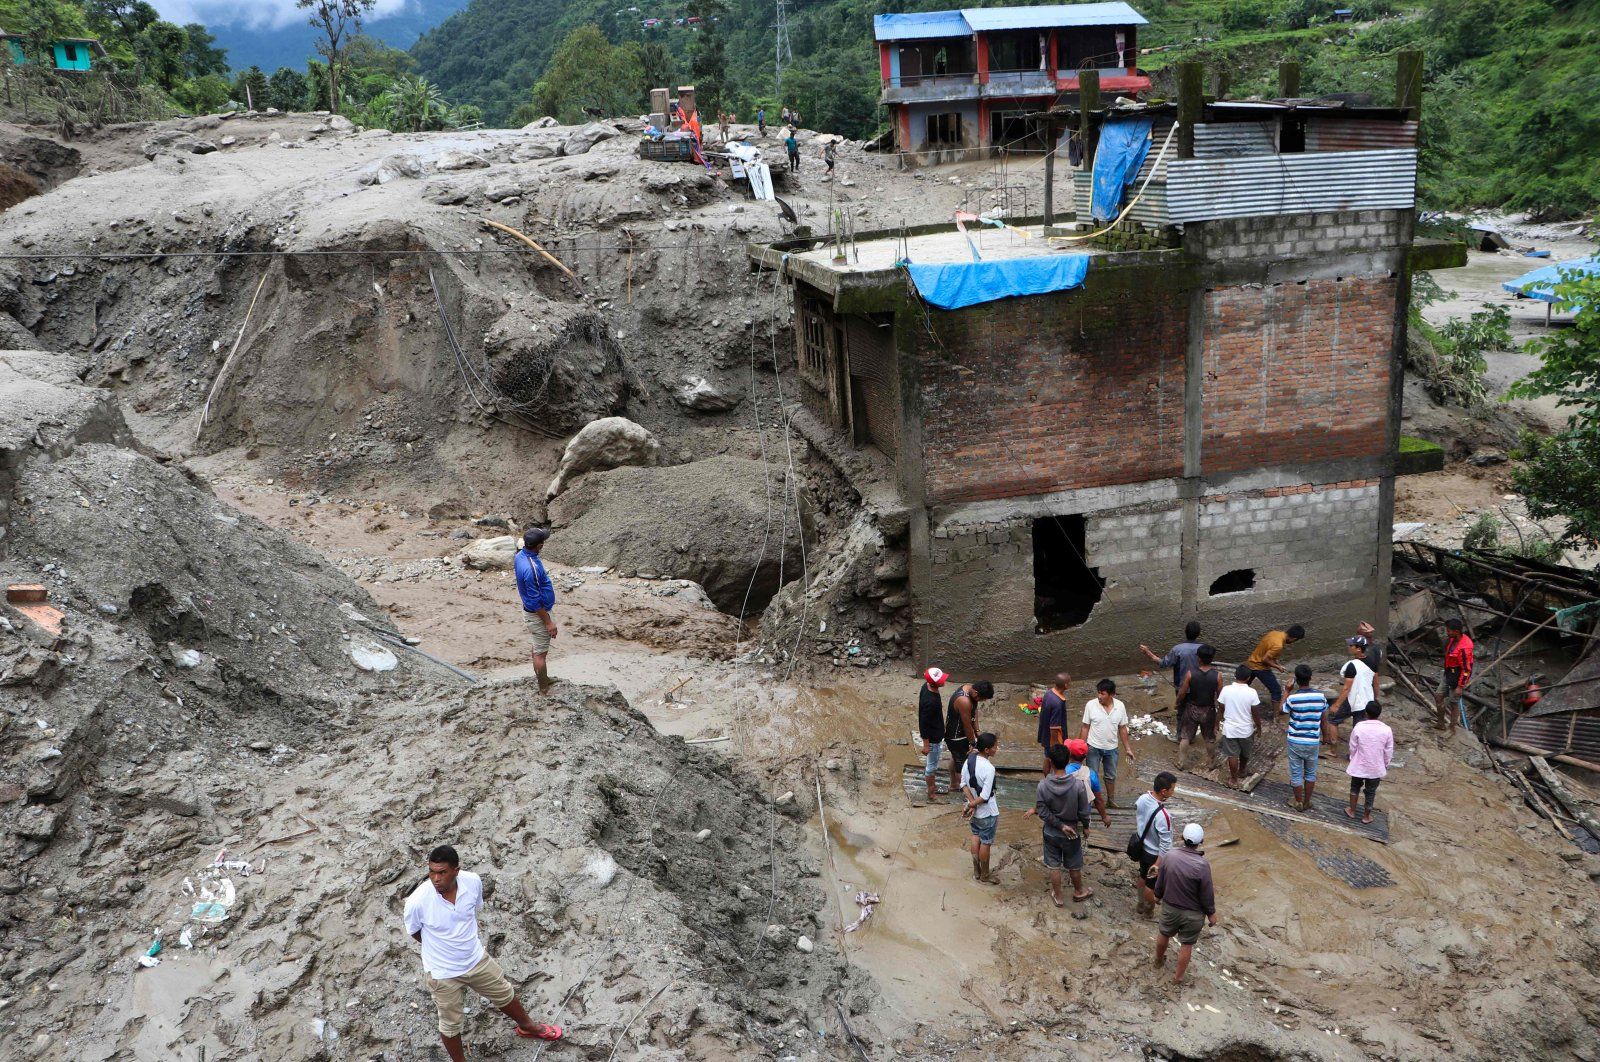 Residents and rescue workers inspect the area outside a house damaged by a landslide and the swell of the Thado-Koshi river due to heavy rains in Jambu village of Sindhupalchok district, some 80 kilometers northeast of Kathmandu, Nepal, July 9, 2020. (AFP Photo)